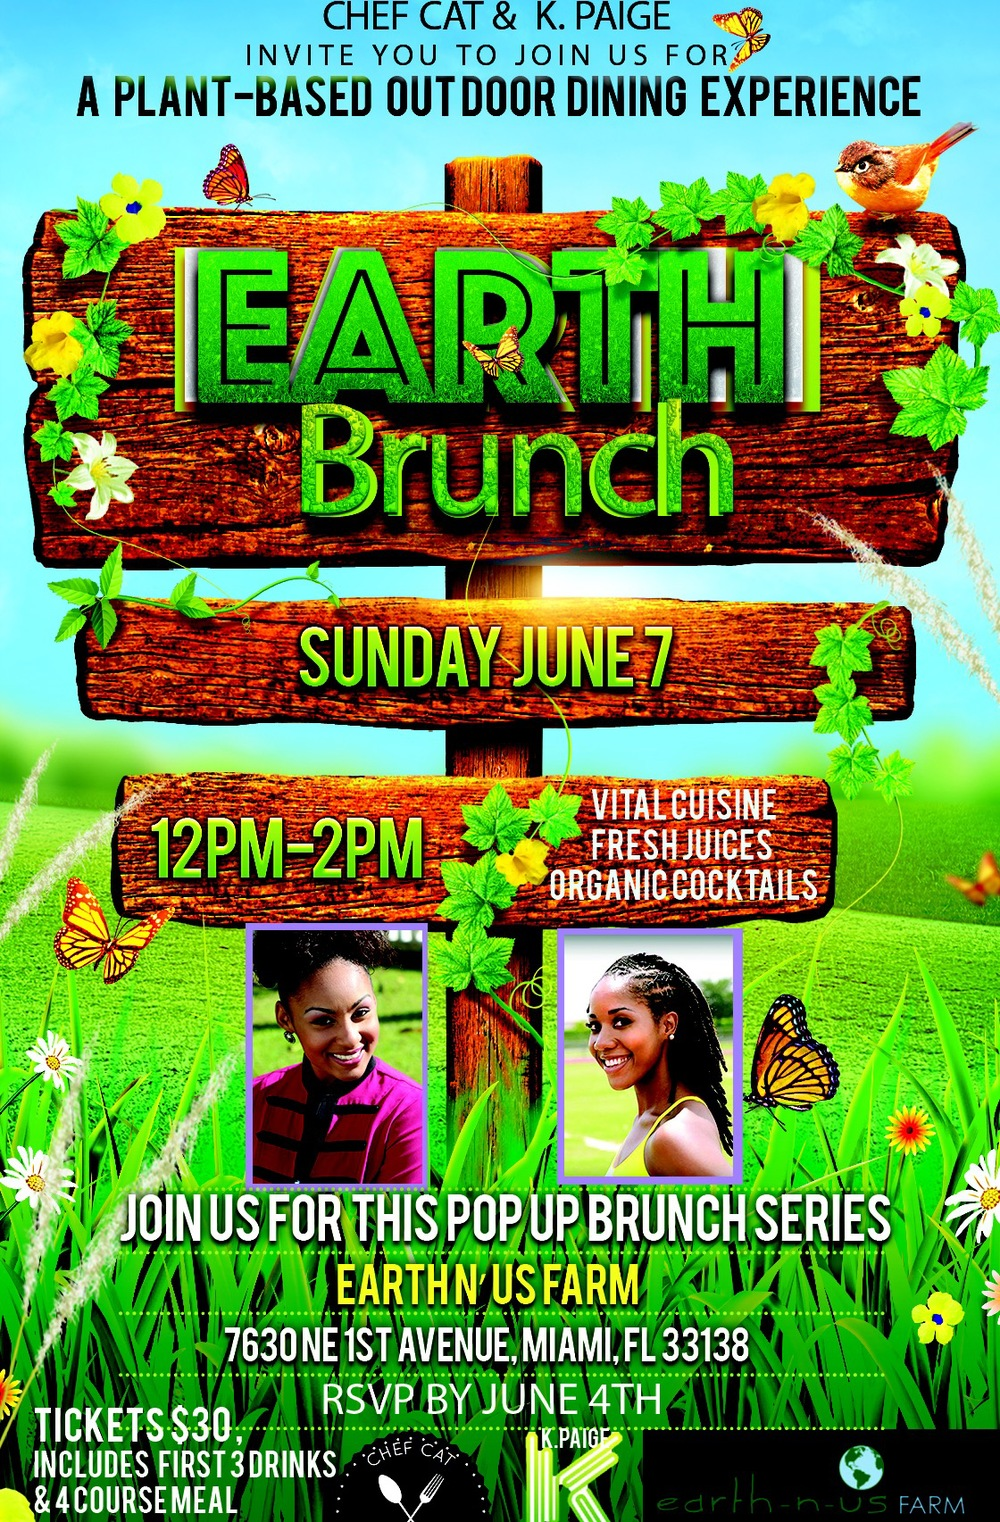 Miami Plant-based Pop Up Brunch Series